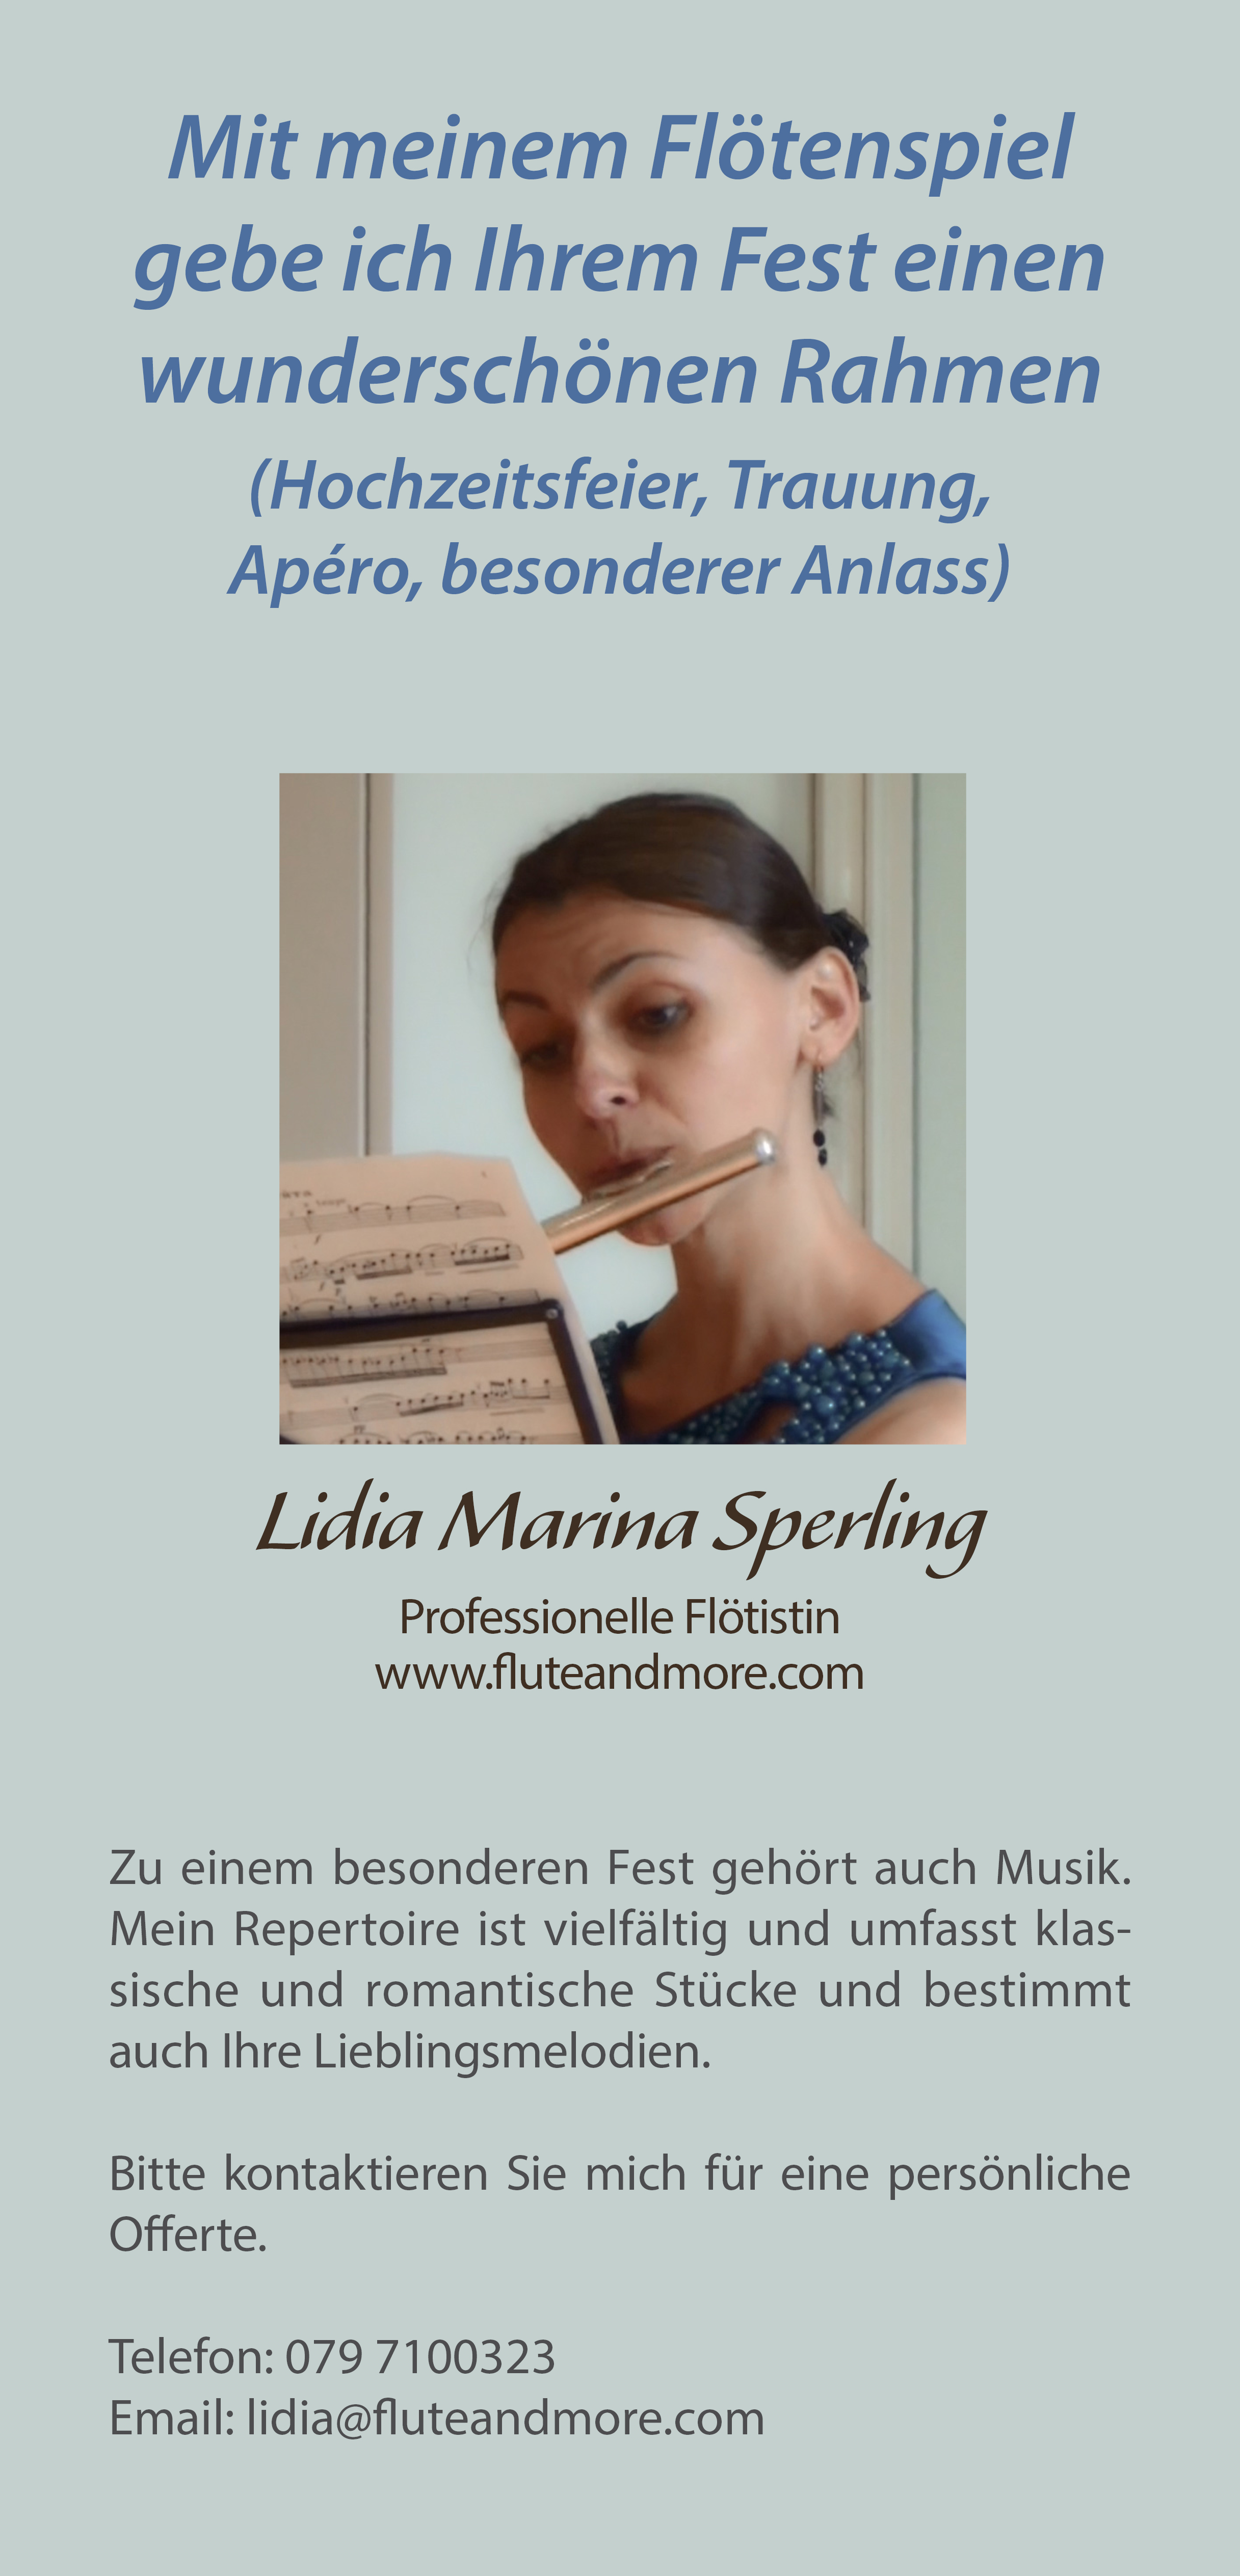 Flyer for private flute concerts